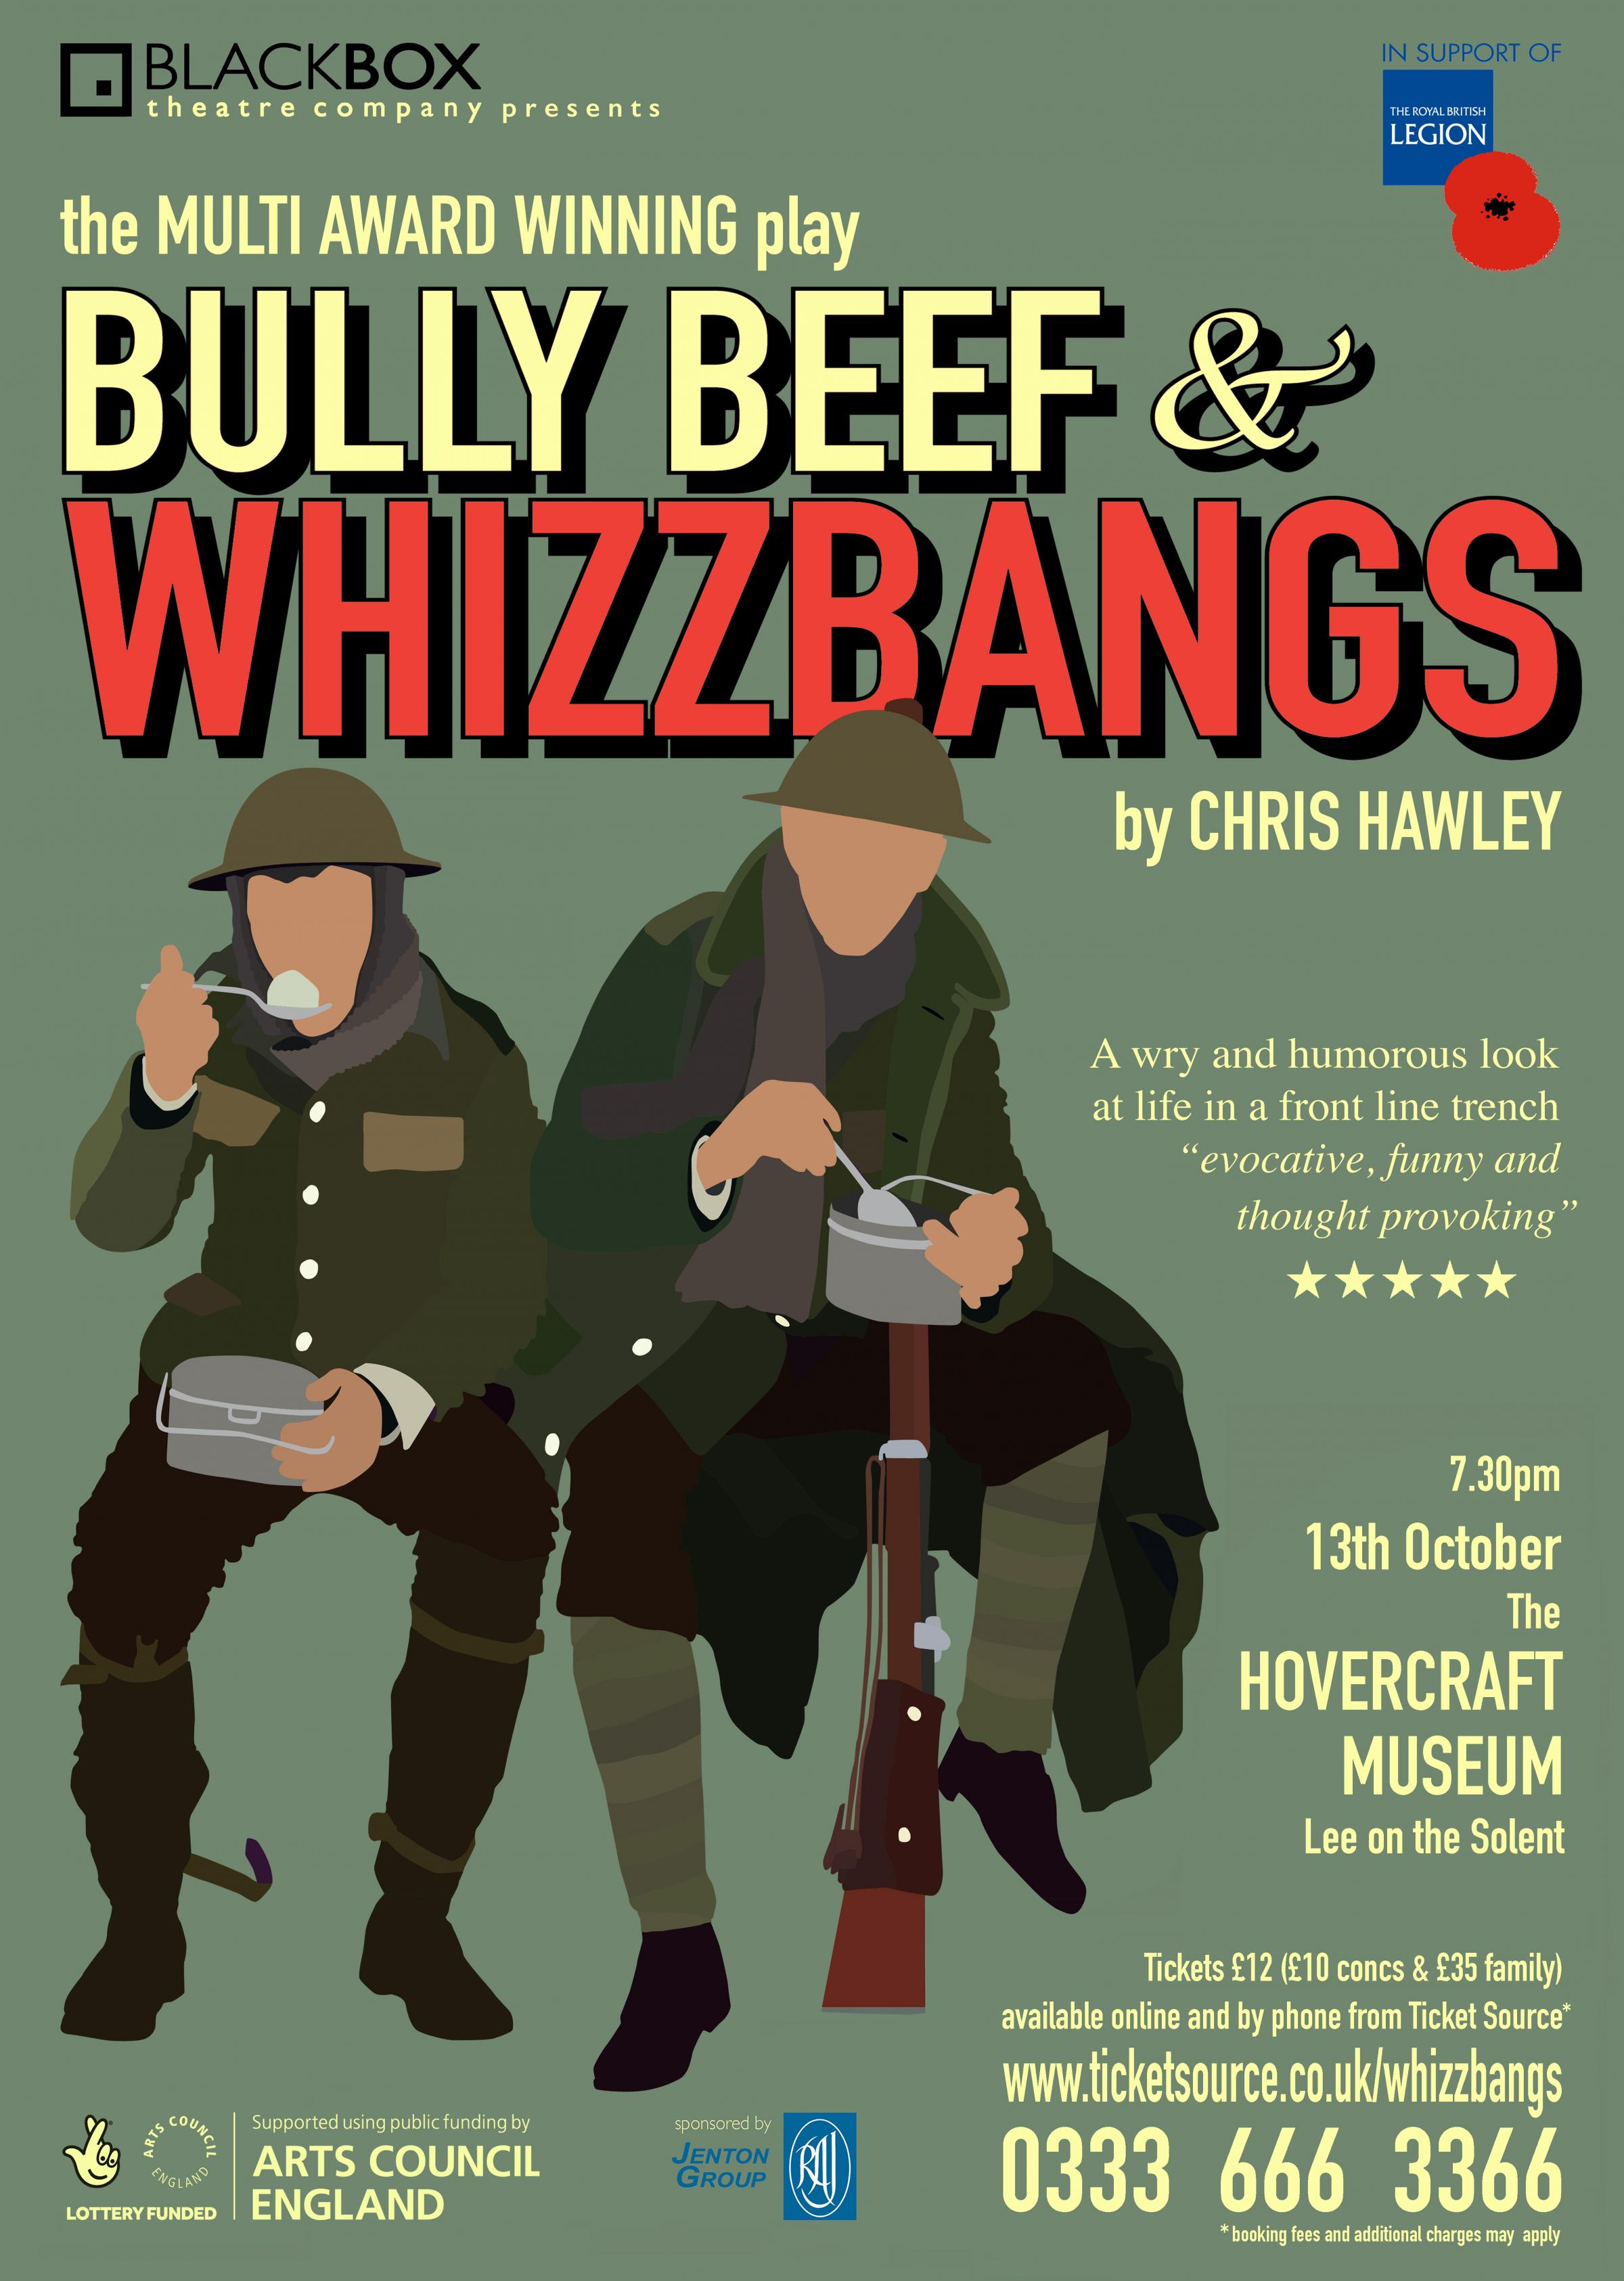 BULLY BEEF & WHIZZBANGS